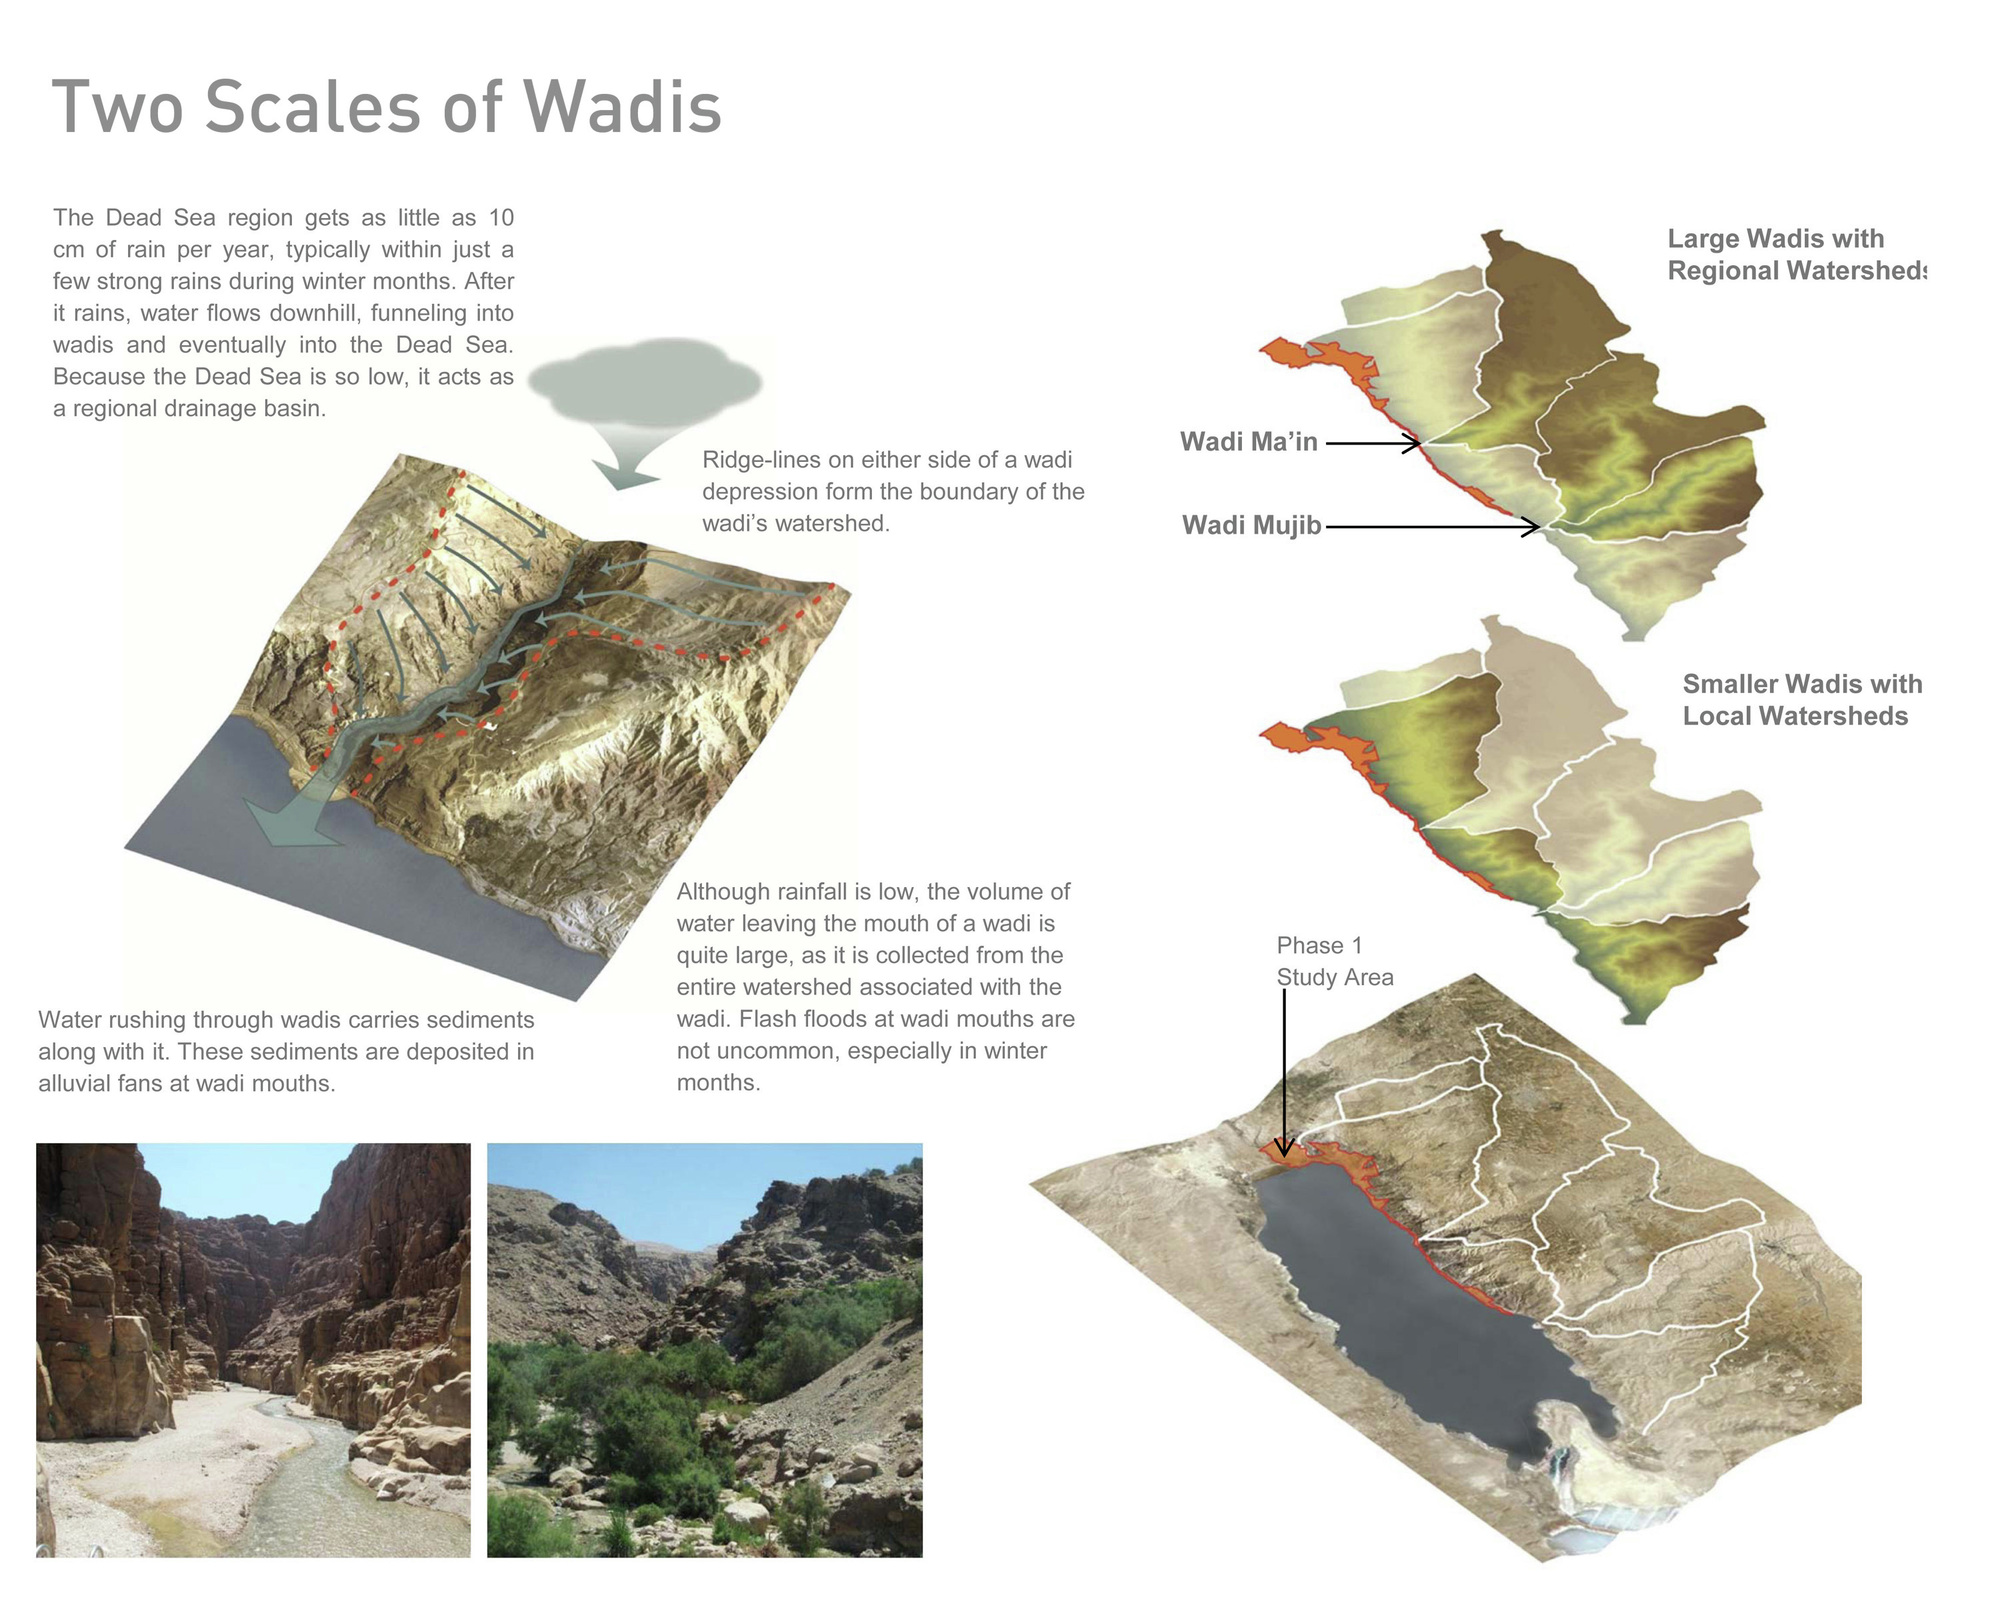 wad a watershed lab essay Arabic and islamic philosophy of language and logic this is a watershed moment: especially 'ilm al-wad.